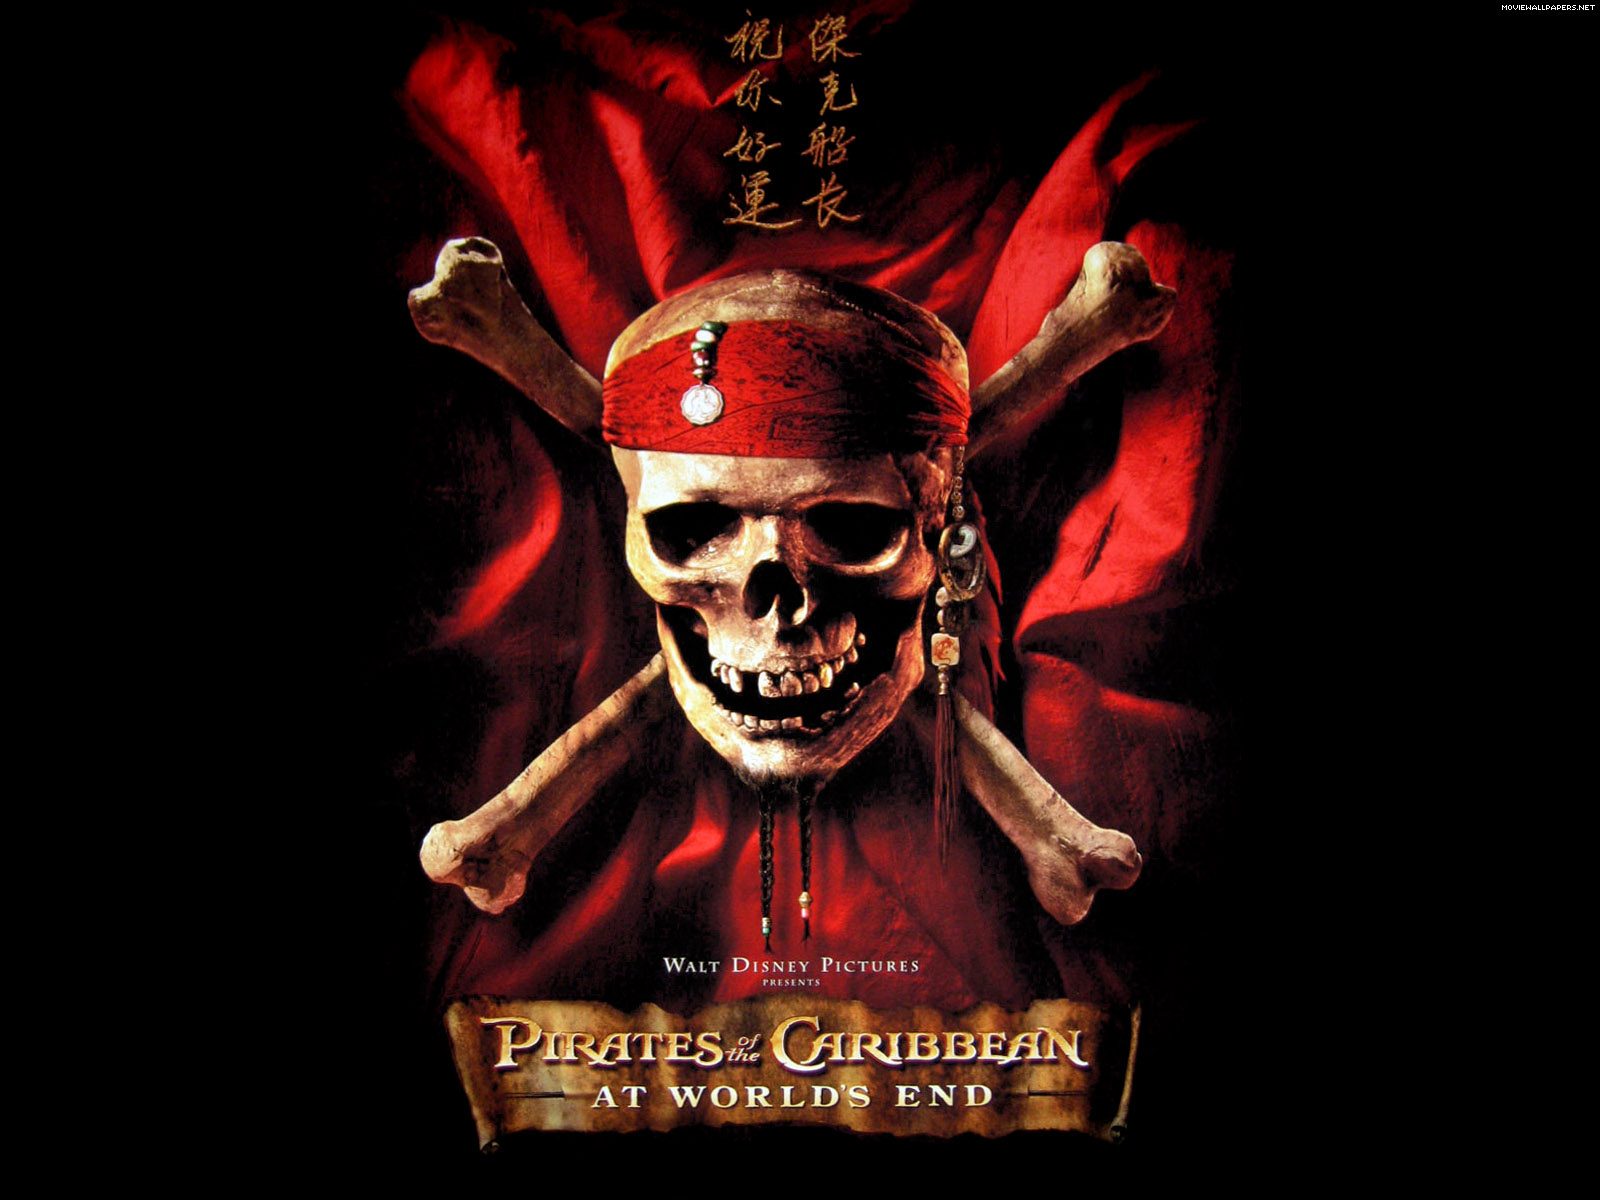 Pirates Of The Caribbean Wallpaper, Free Easter Wallpaper - Pirates Of The Caribbean At World's End , HD Wallpaper & Backgrounds